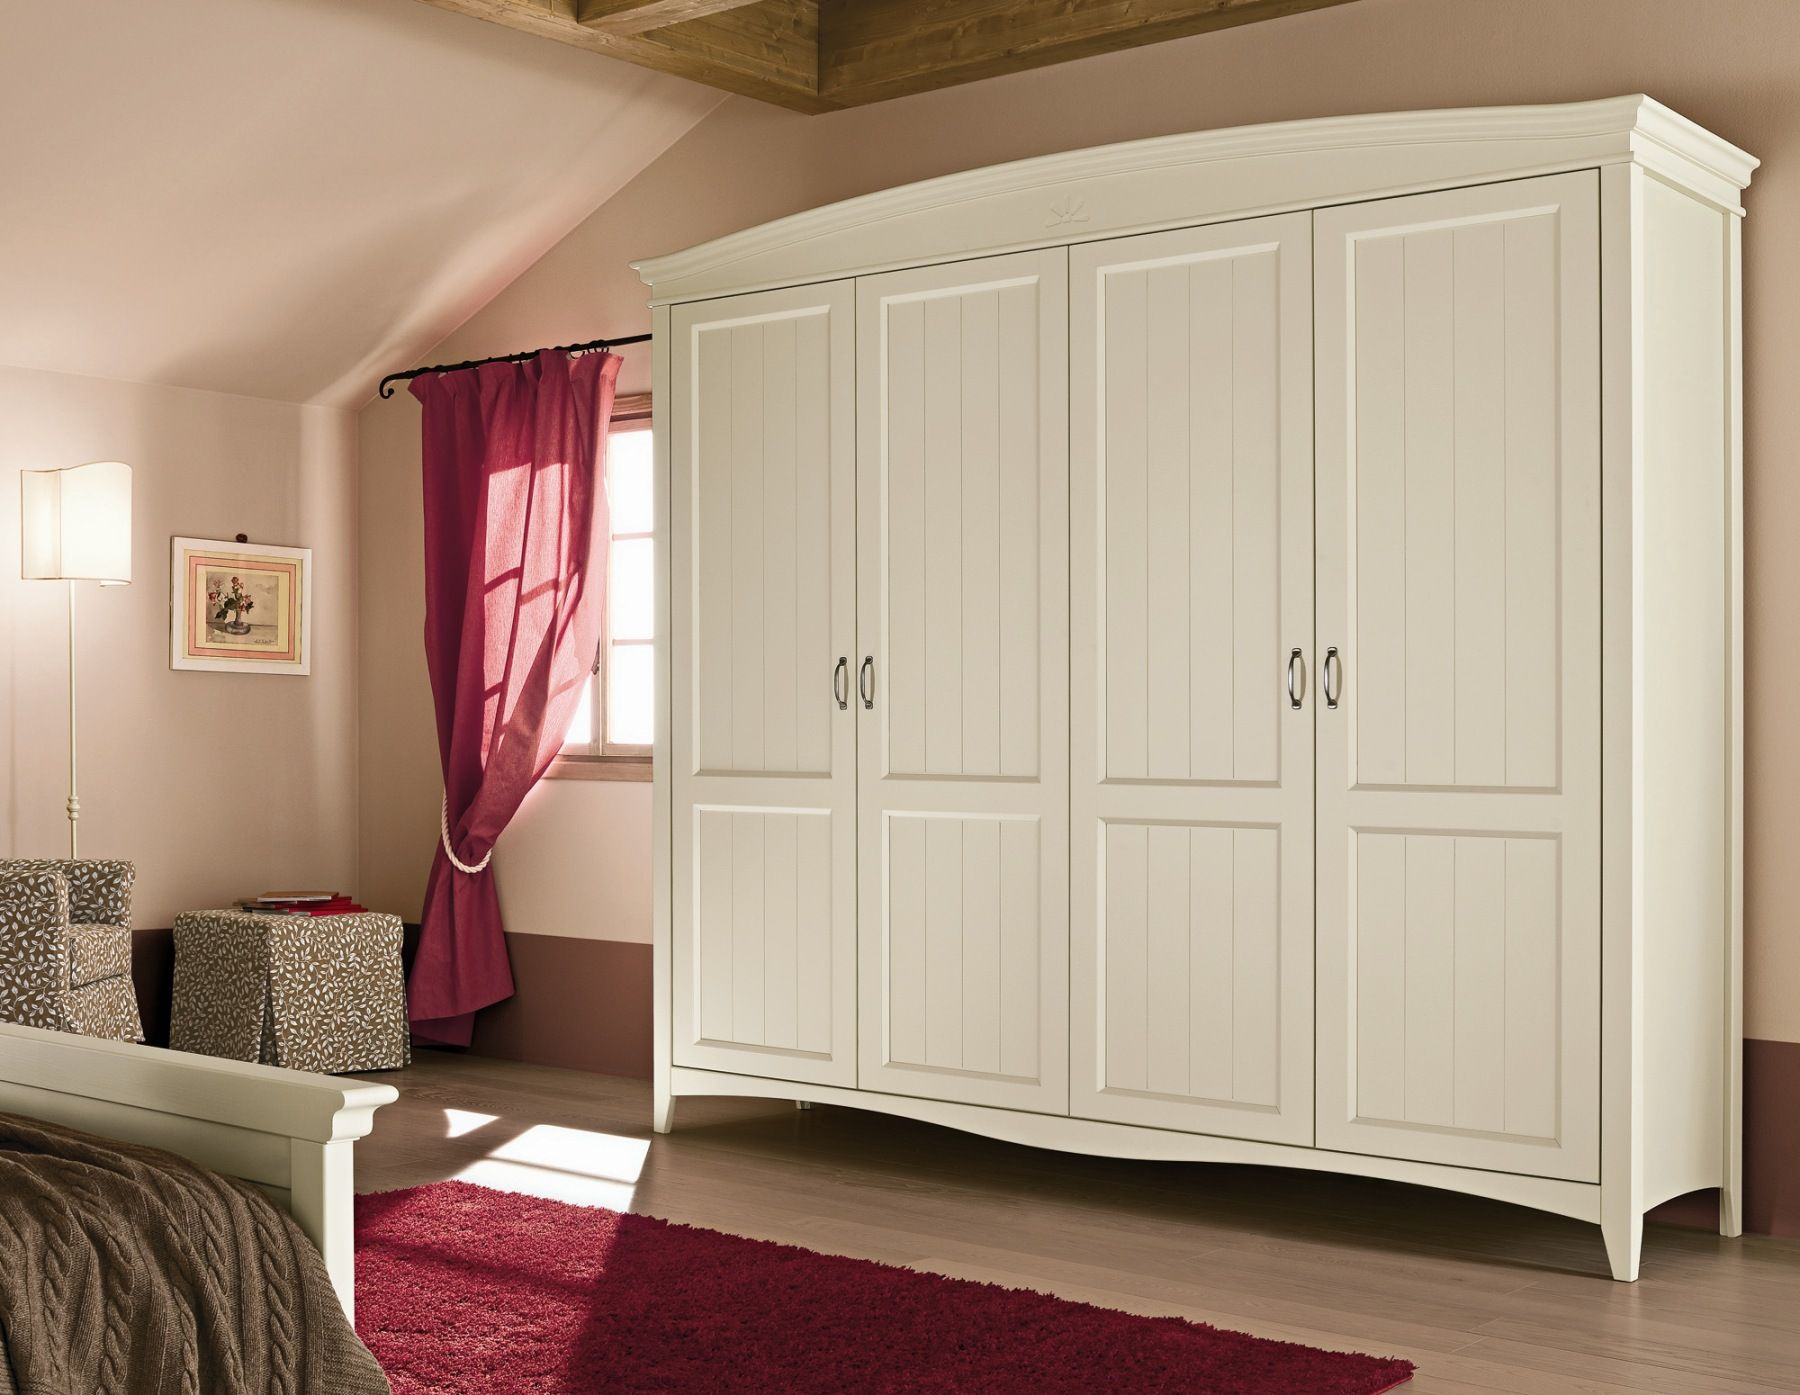 Callesella Camerette ~ Wooden bedroom set romantic composition 09 by callesella